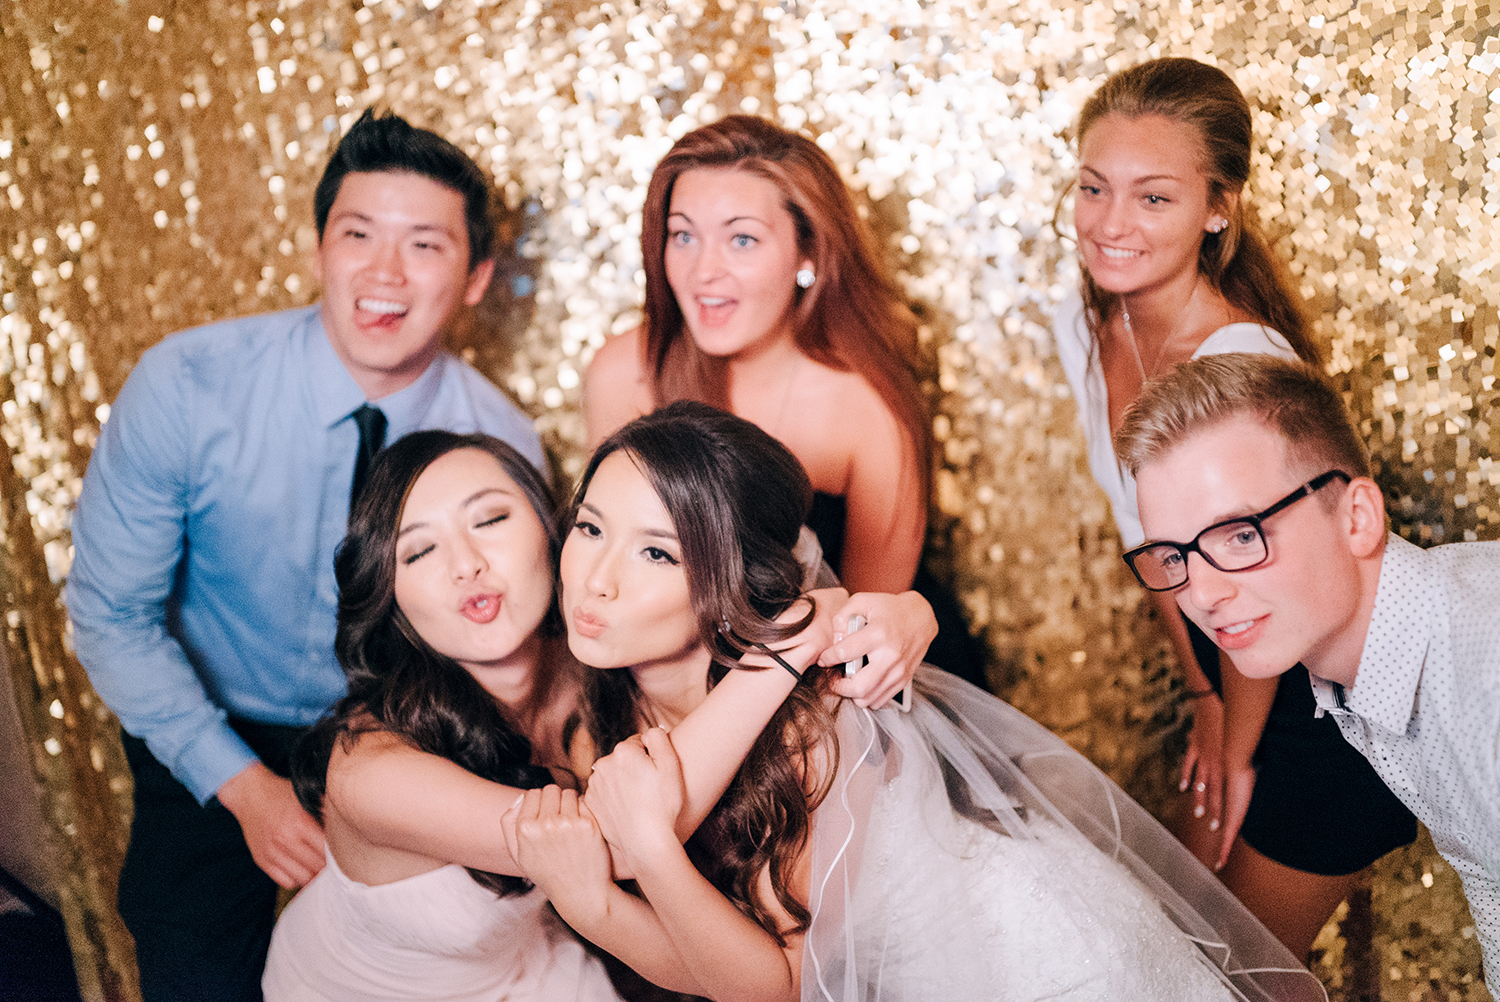 bridal party at wedding reception